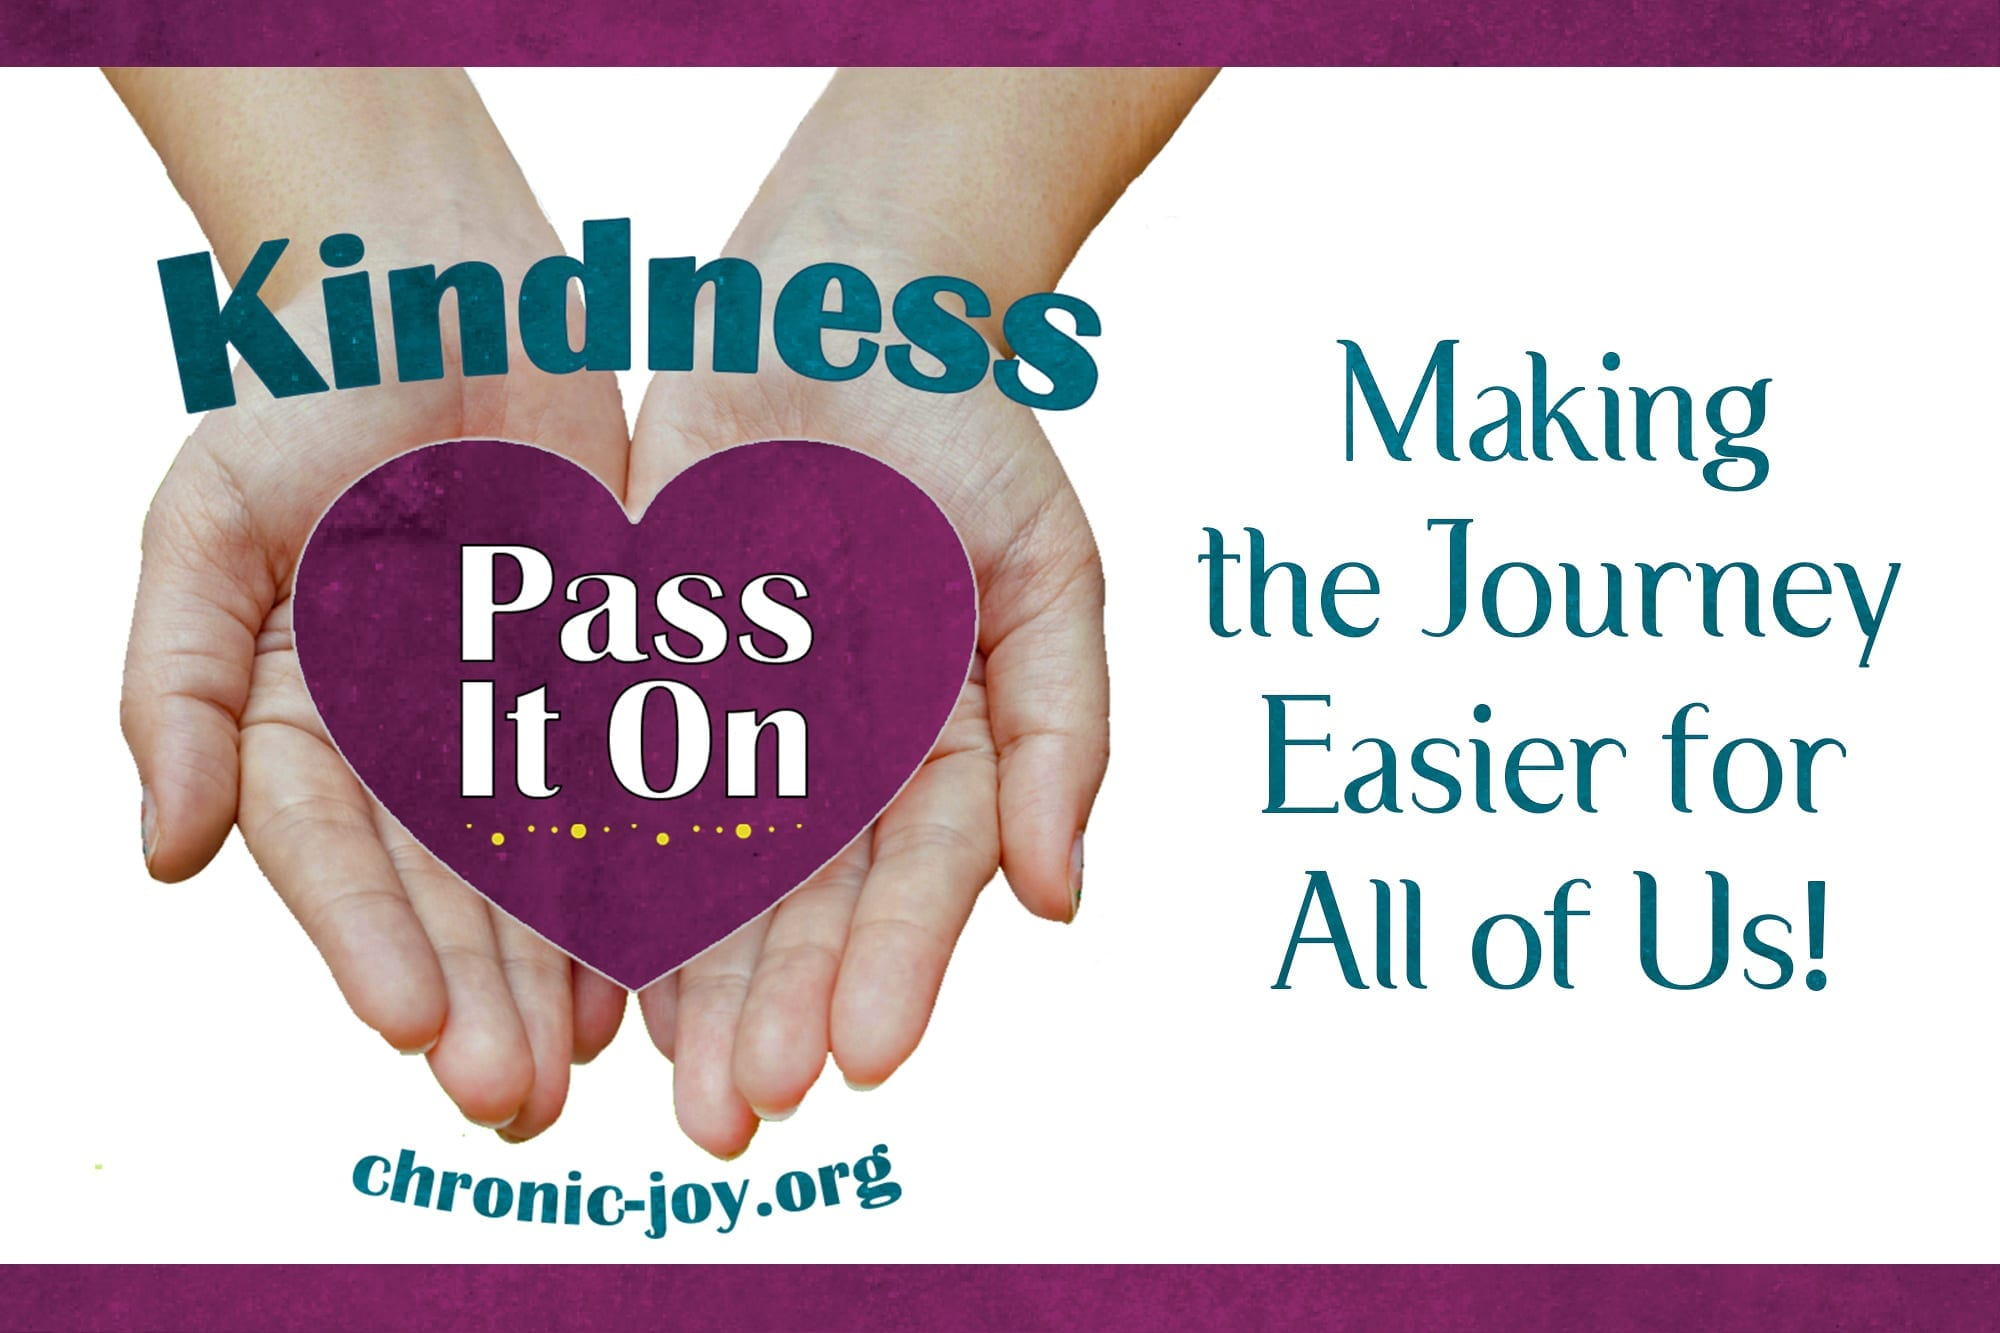 Pass It On! Making the Journey Easier for One Another